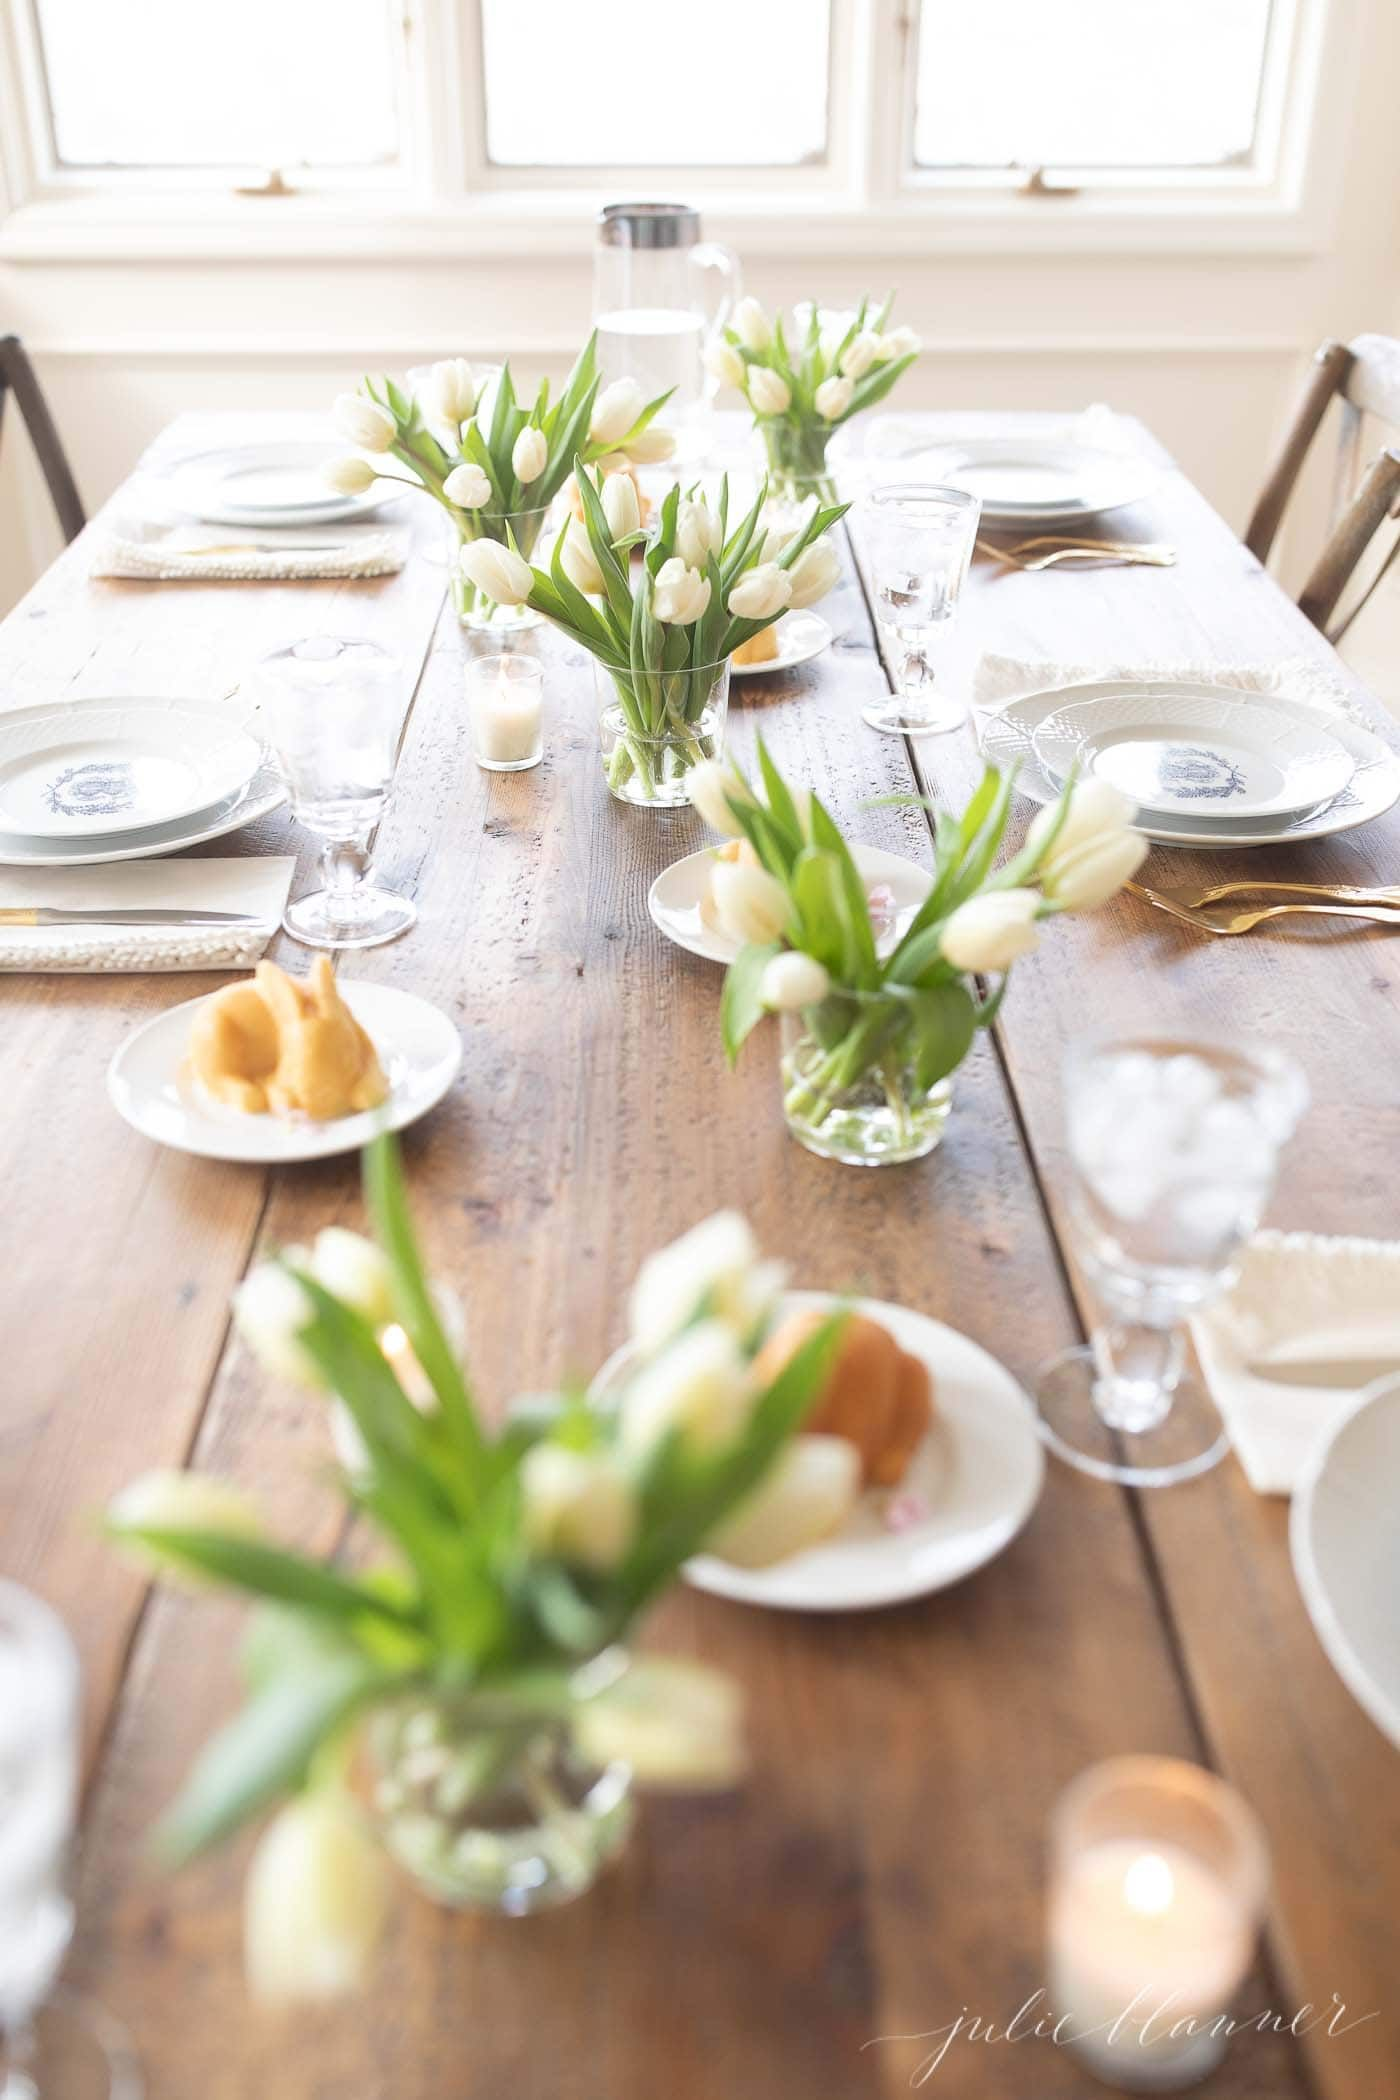 52 Best Easter Decoration Ideas 2020 Diy Table Home Decor For Easter Sunday